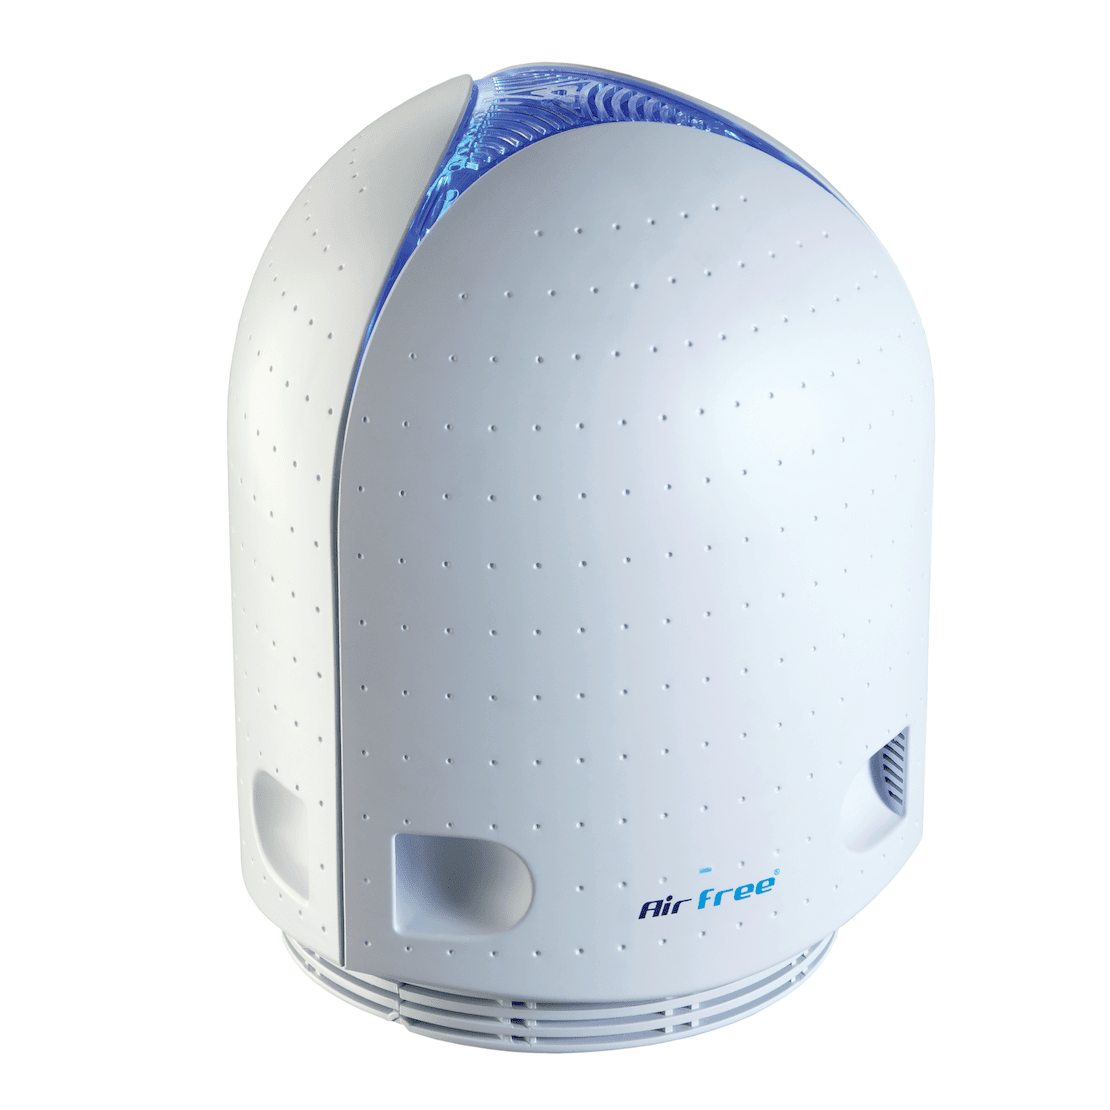 AirFree P2000 Air Purifier ai1047